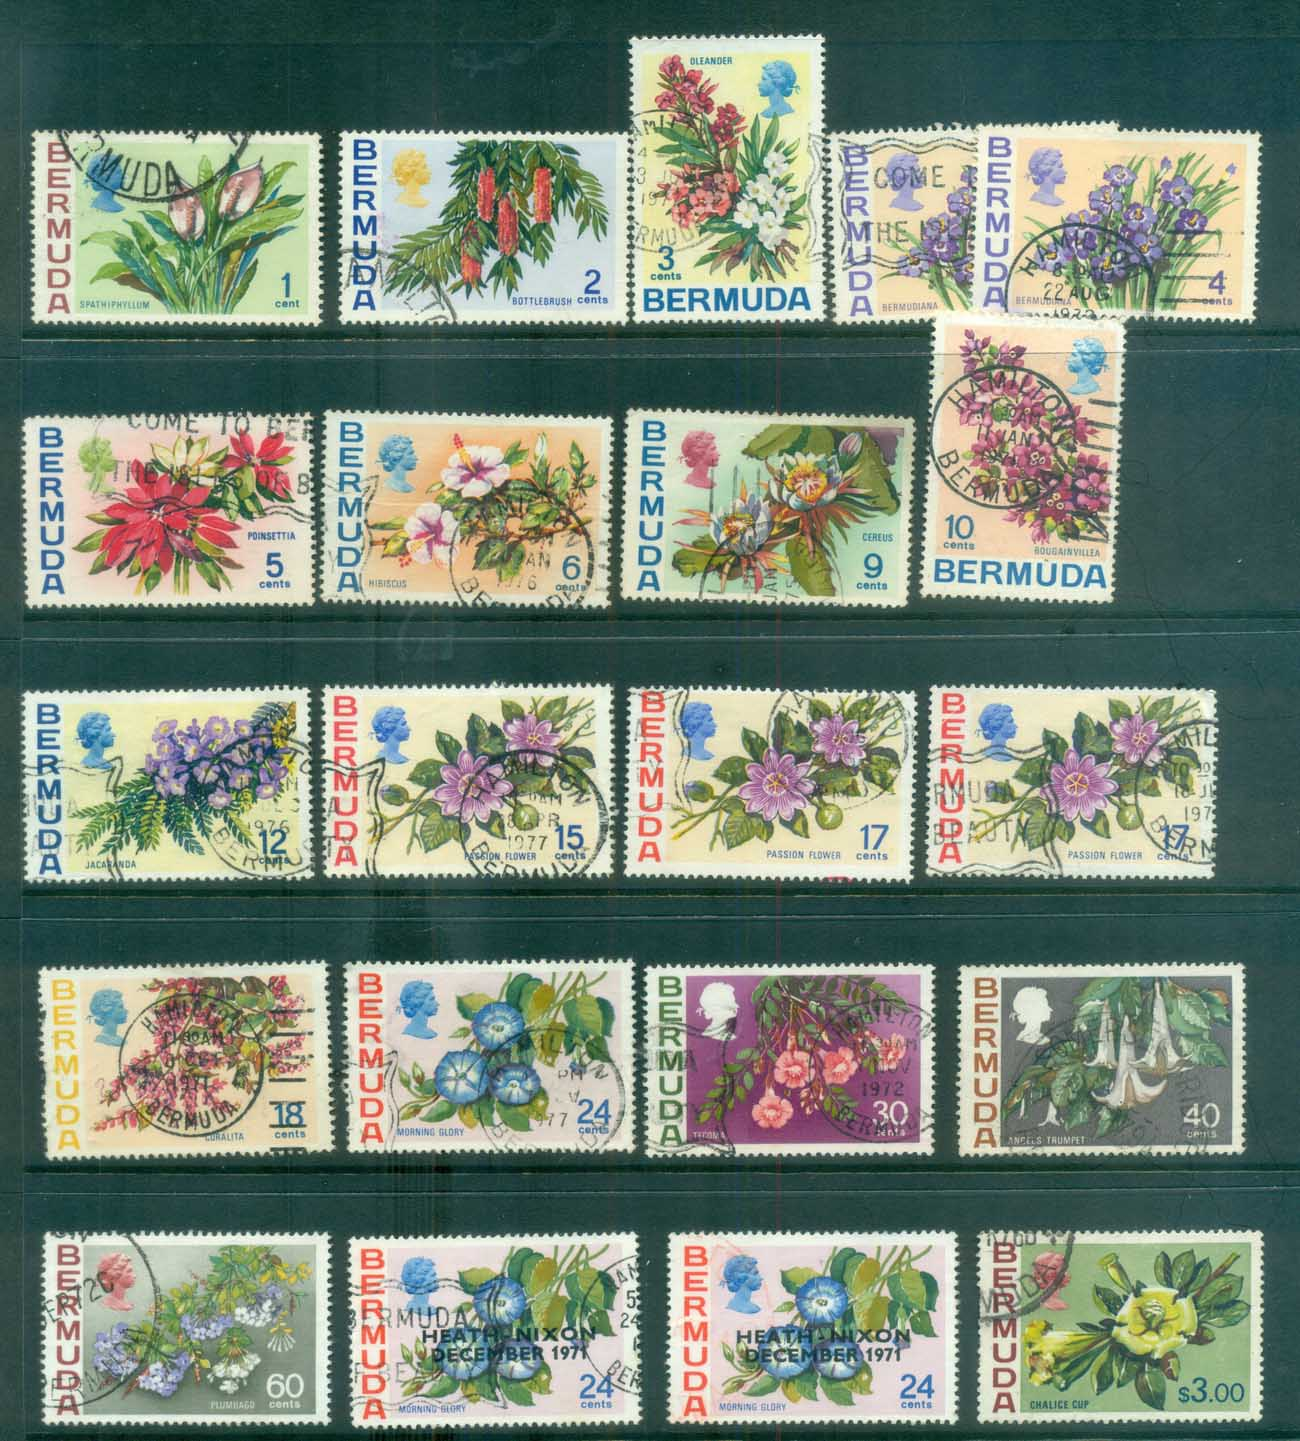 Bermuda 1970-76 Flower Defins Asst FU lot79228